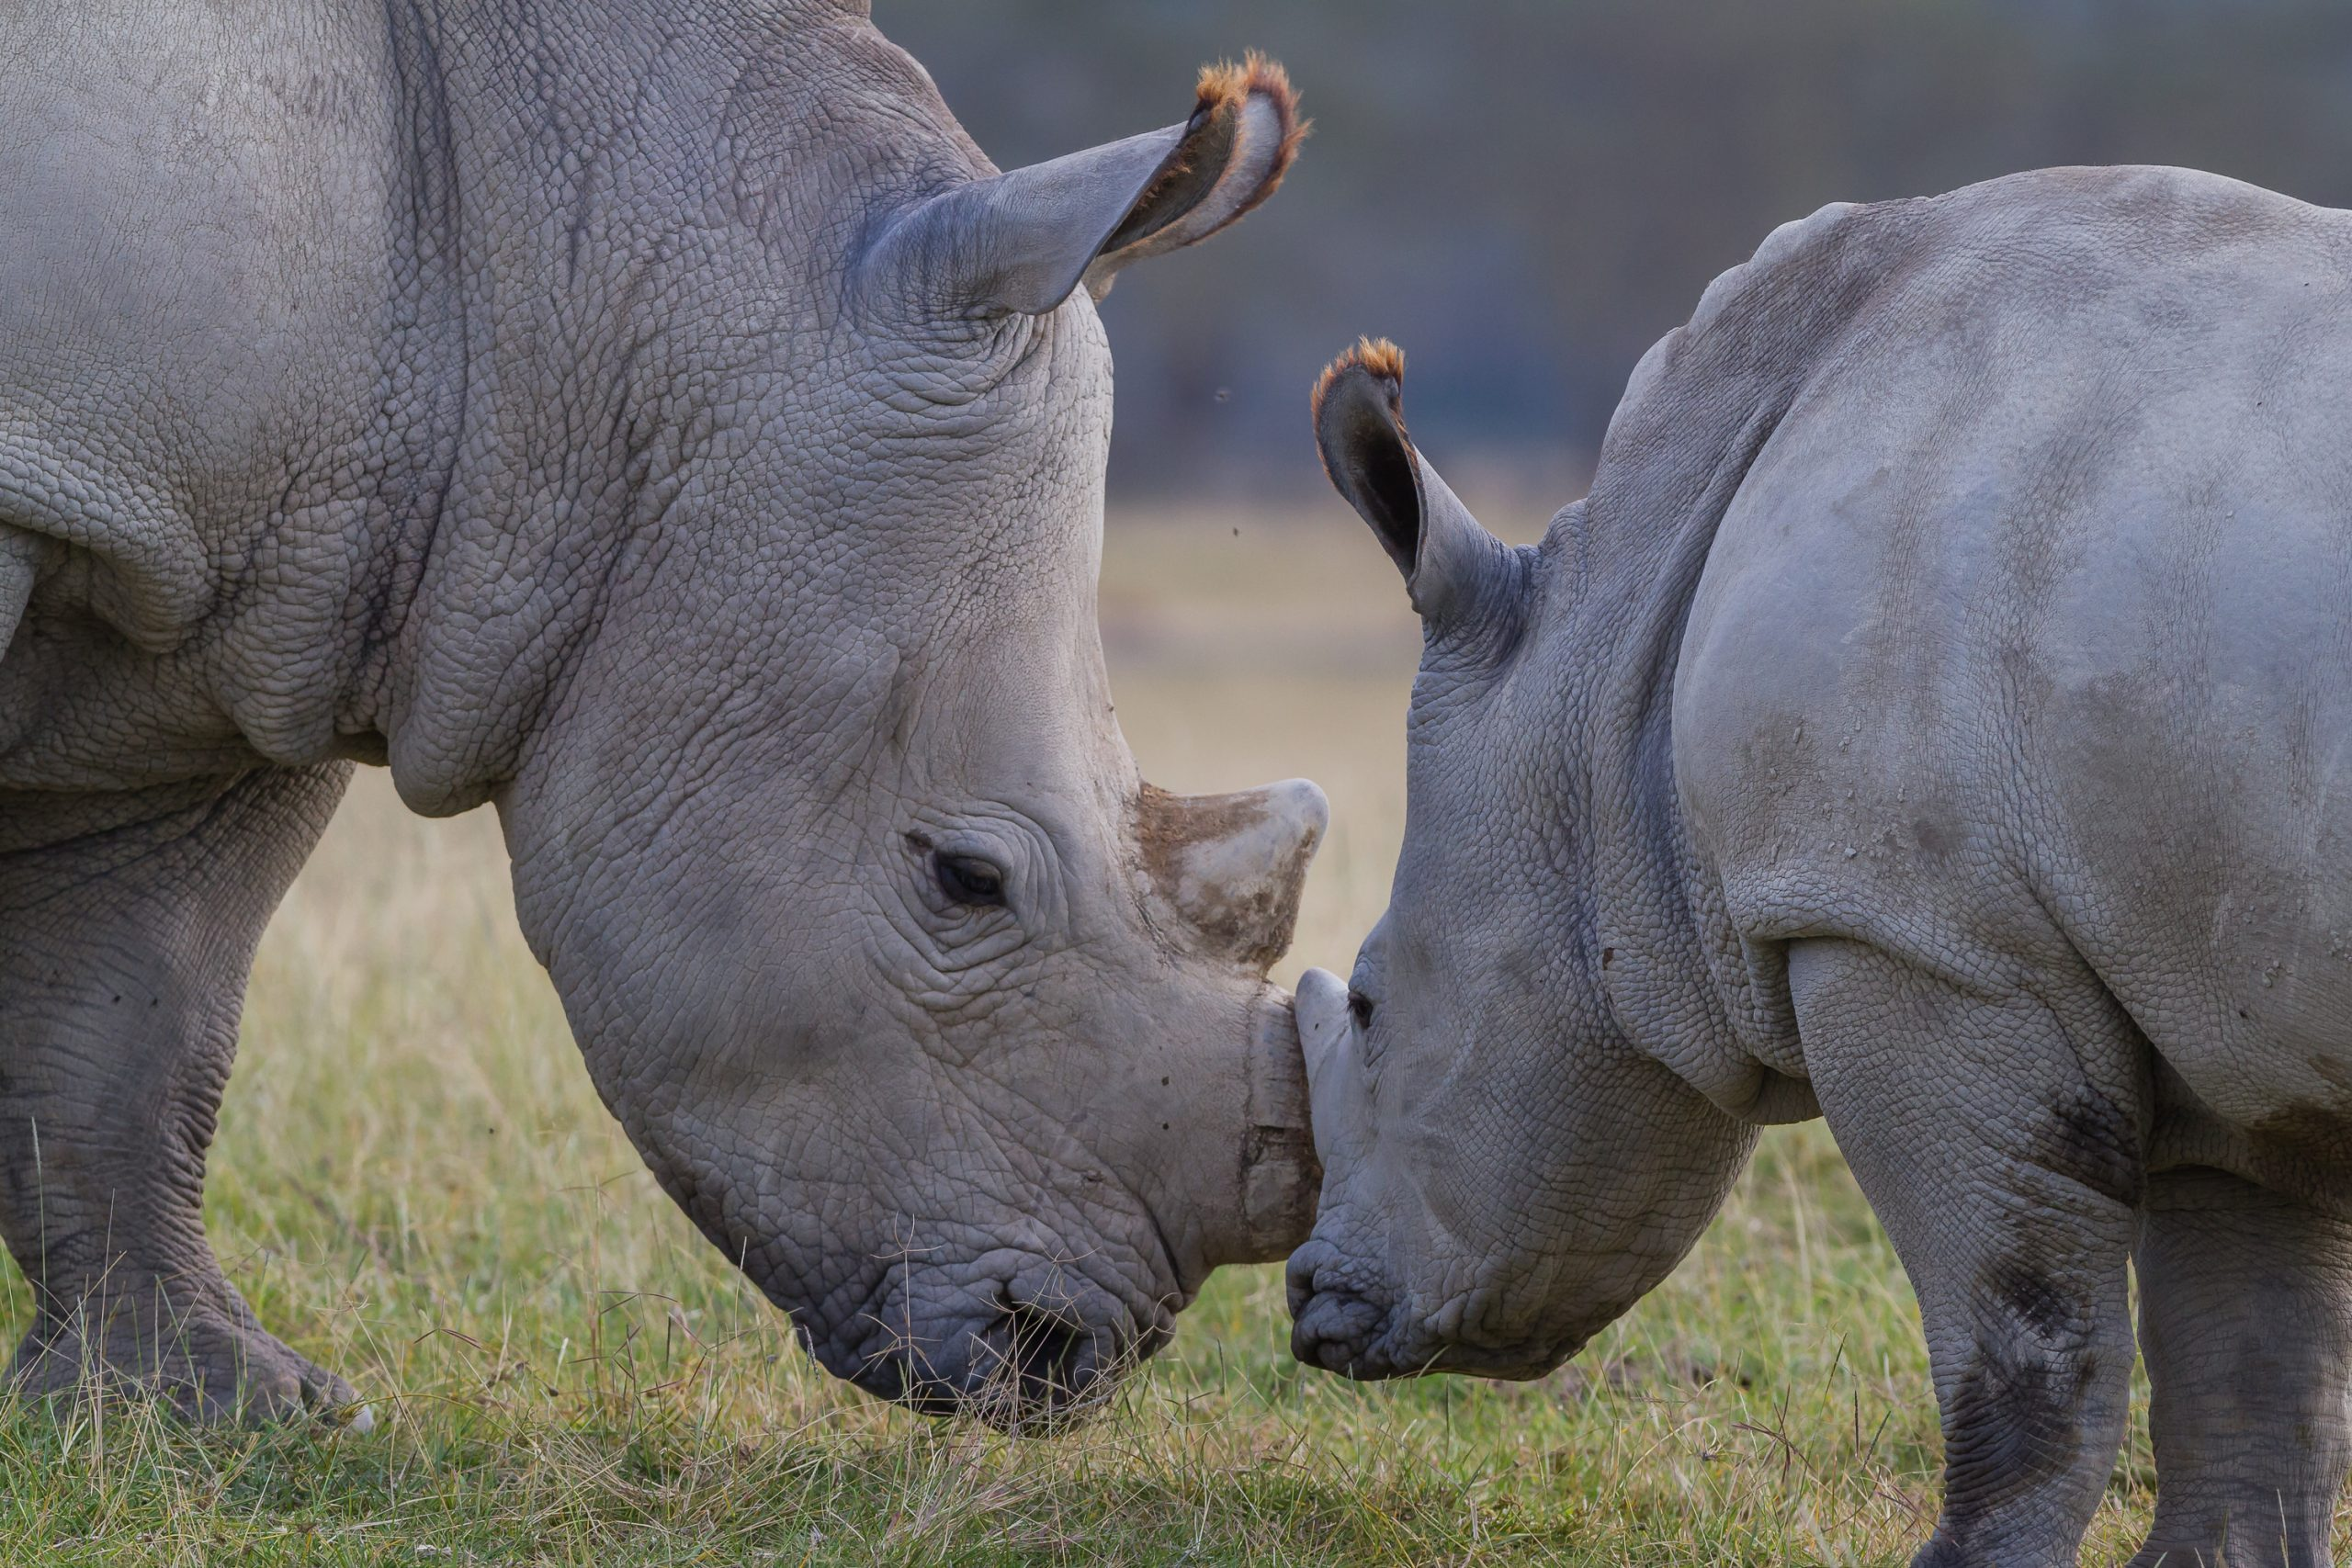 Rhino mother with baby rhino